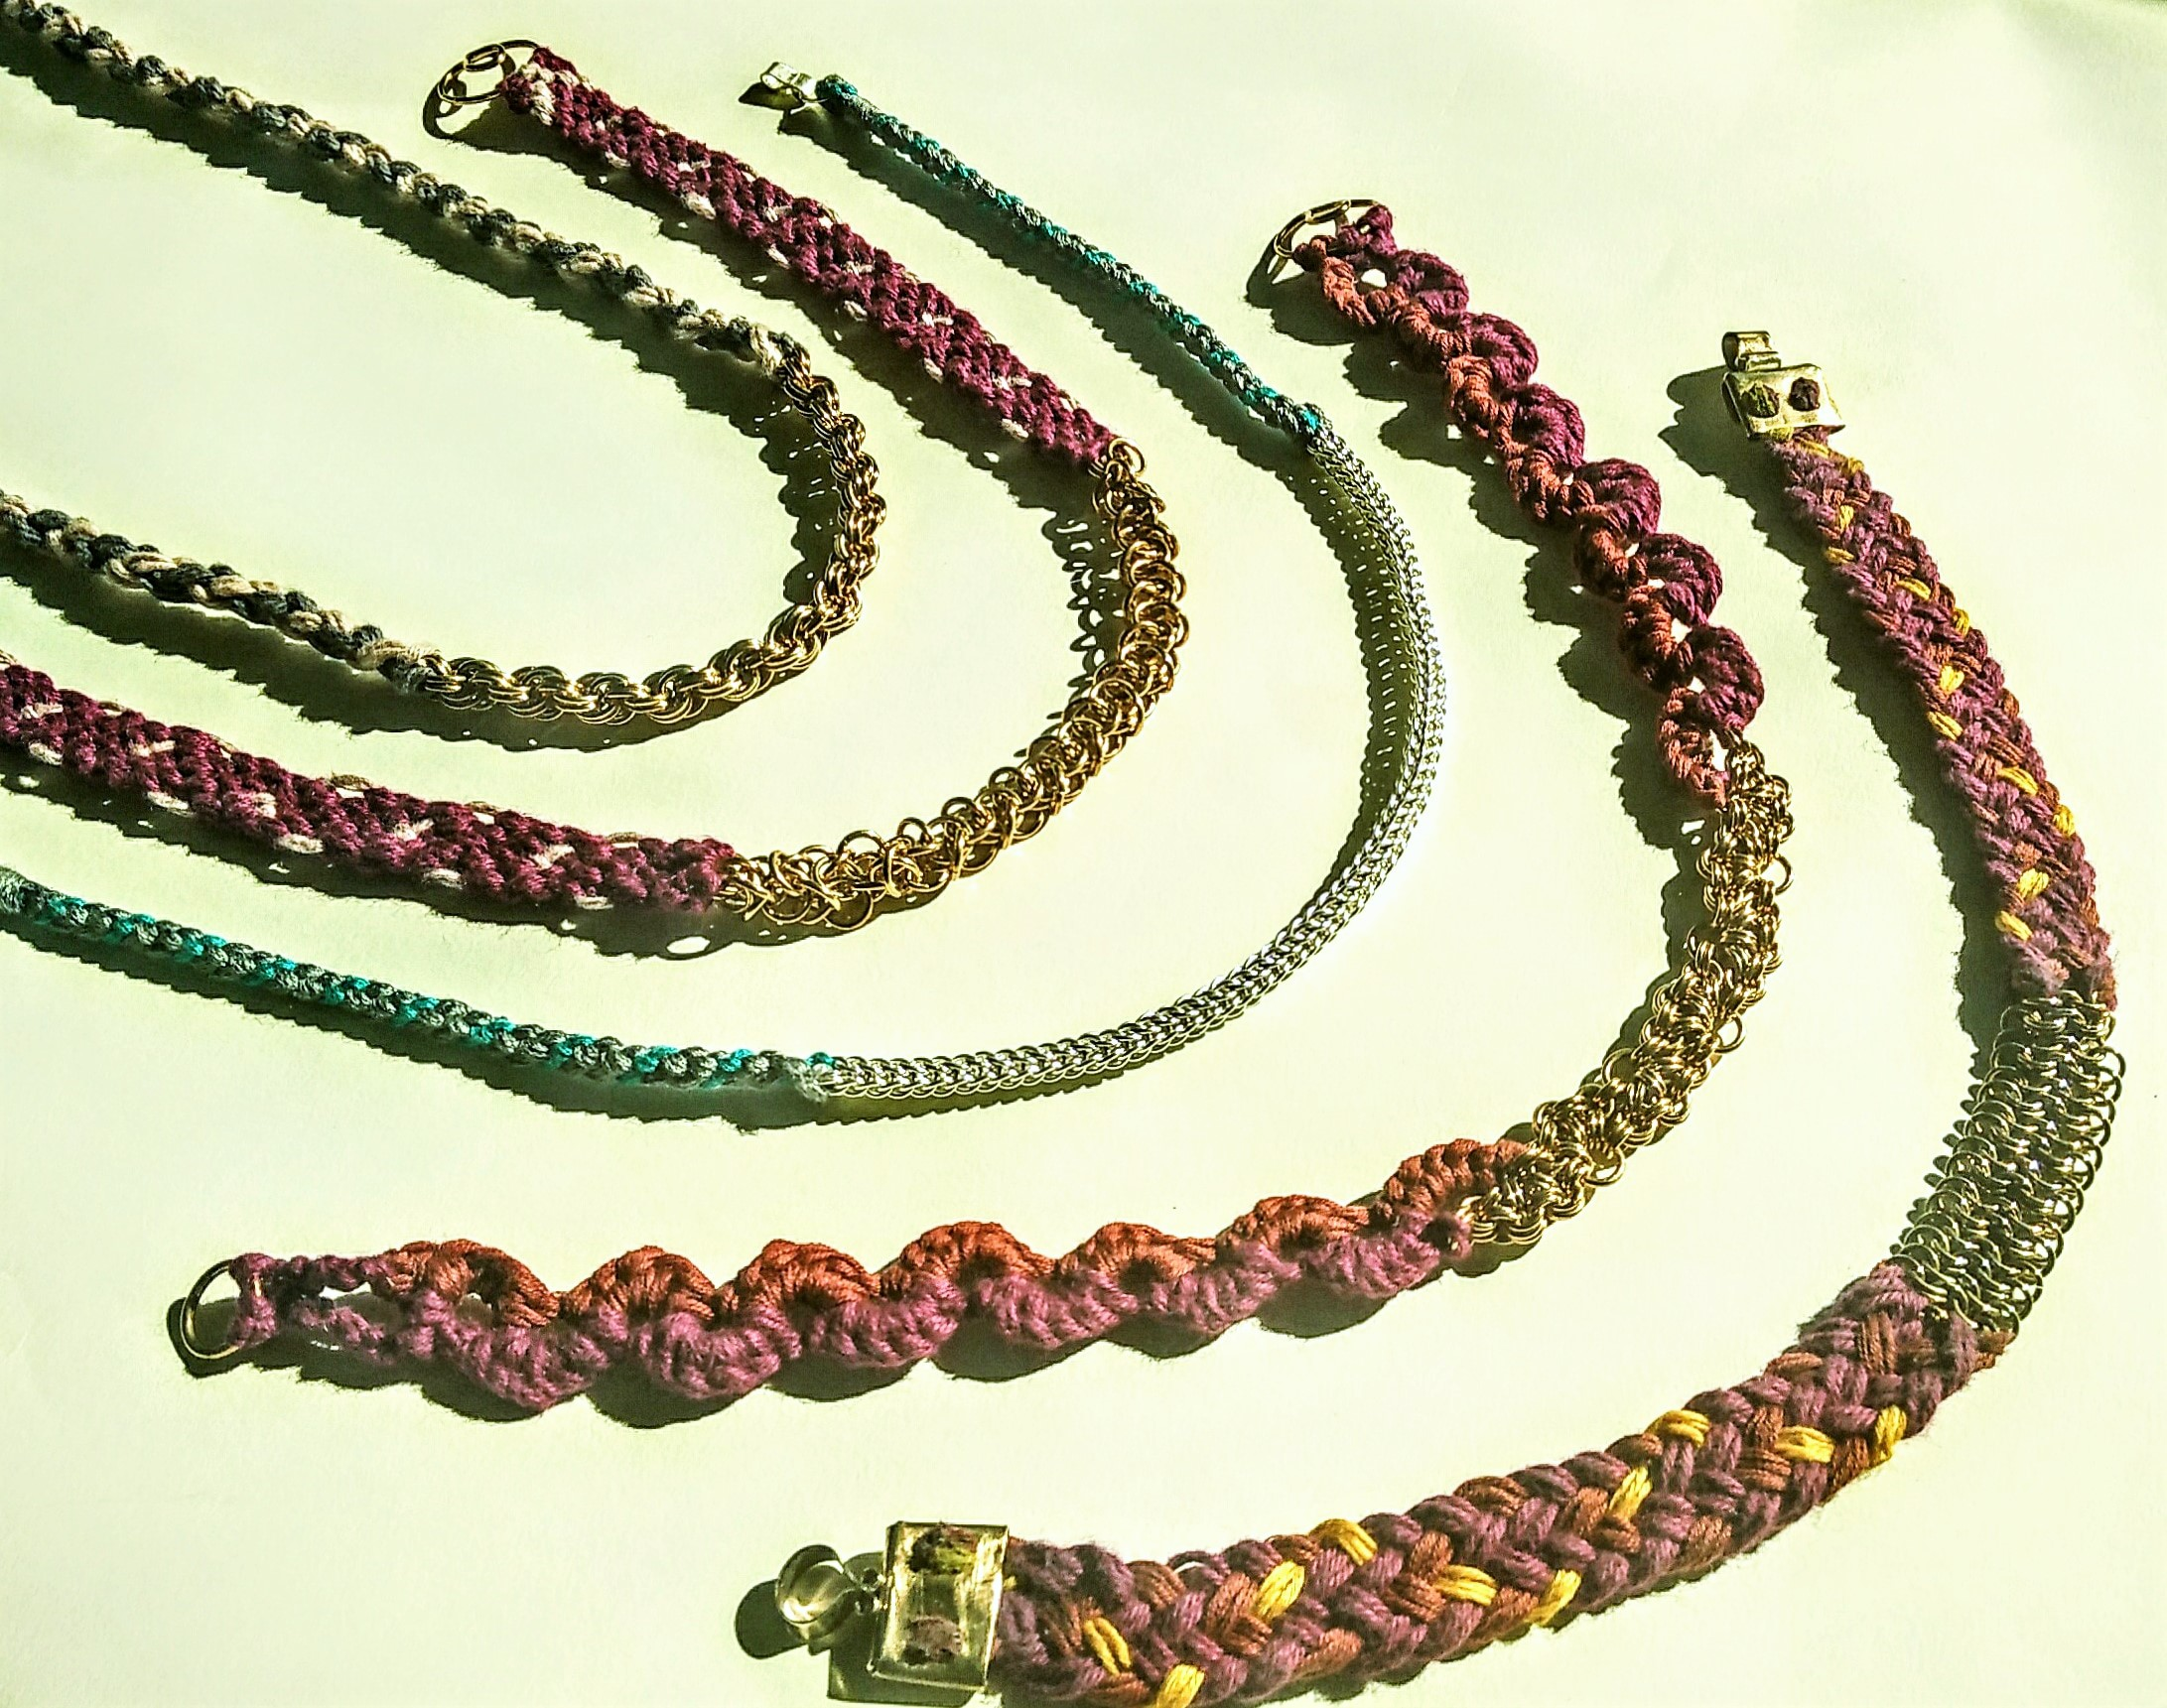 GAANTH - The latest jewellery collection is 'Gaanth'. The necklaces are made by weaving metal and thread together.